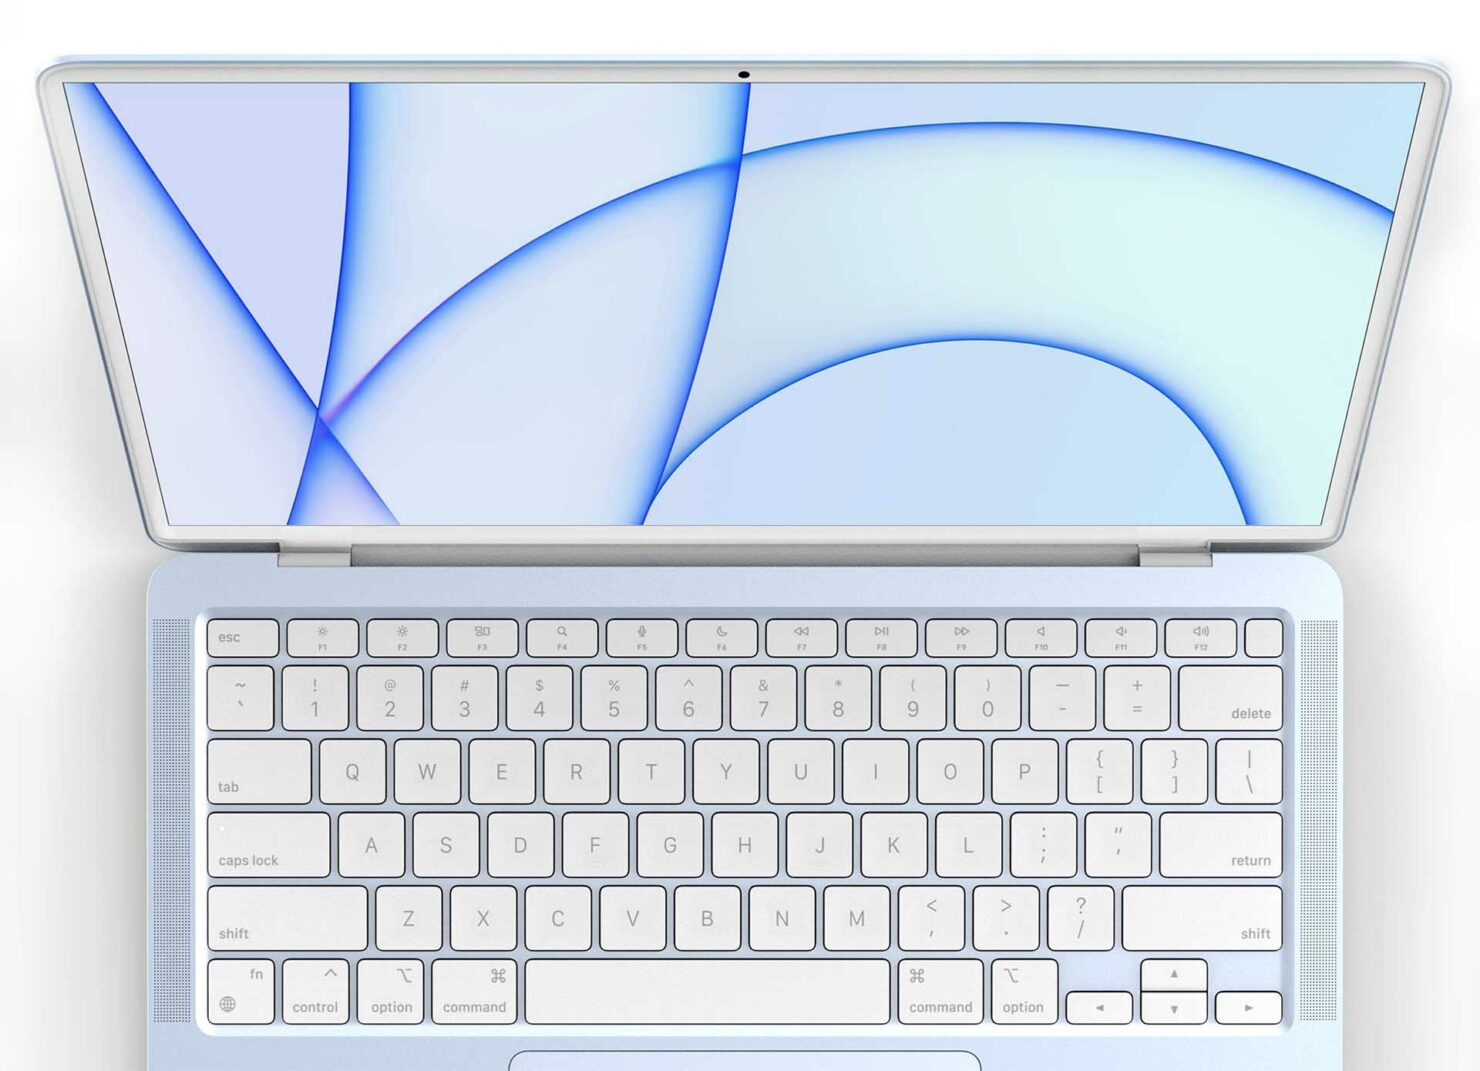 2022 MacBook Air to Get a Redesign, Display Upgrade, With Apple Expected to Launch It in Various Colors